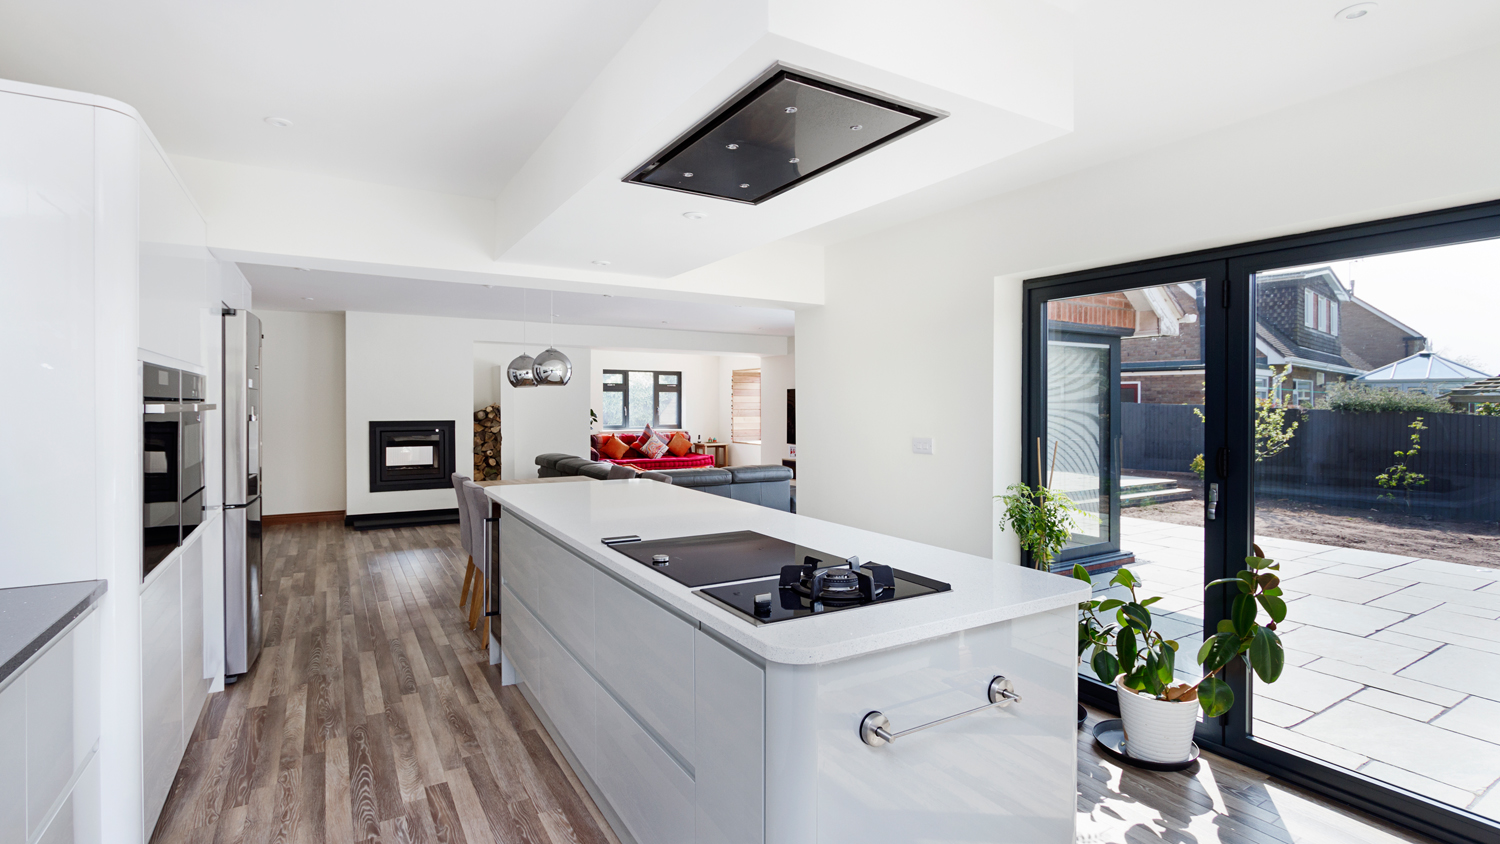 Croft Architecture Remodelling your home